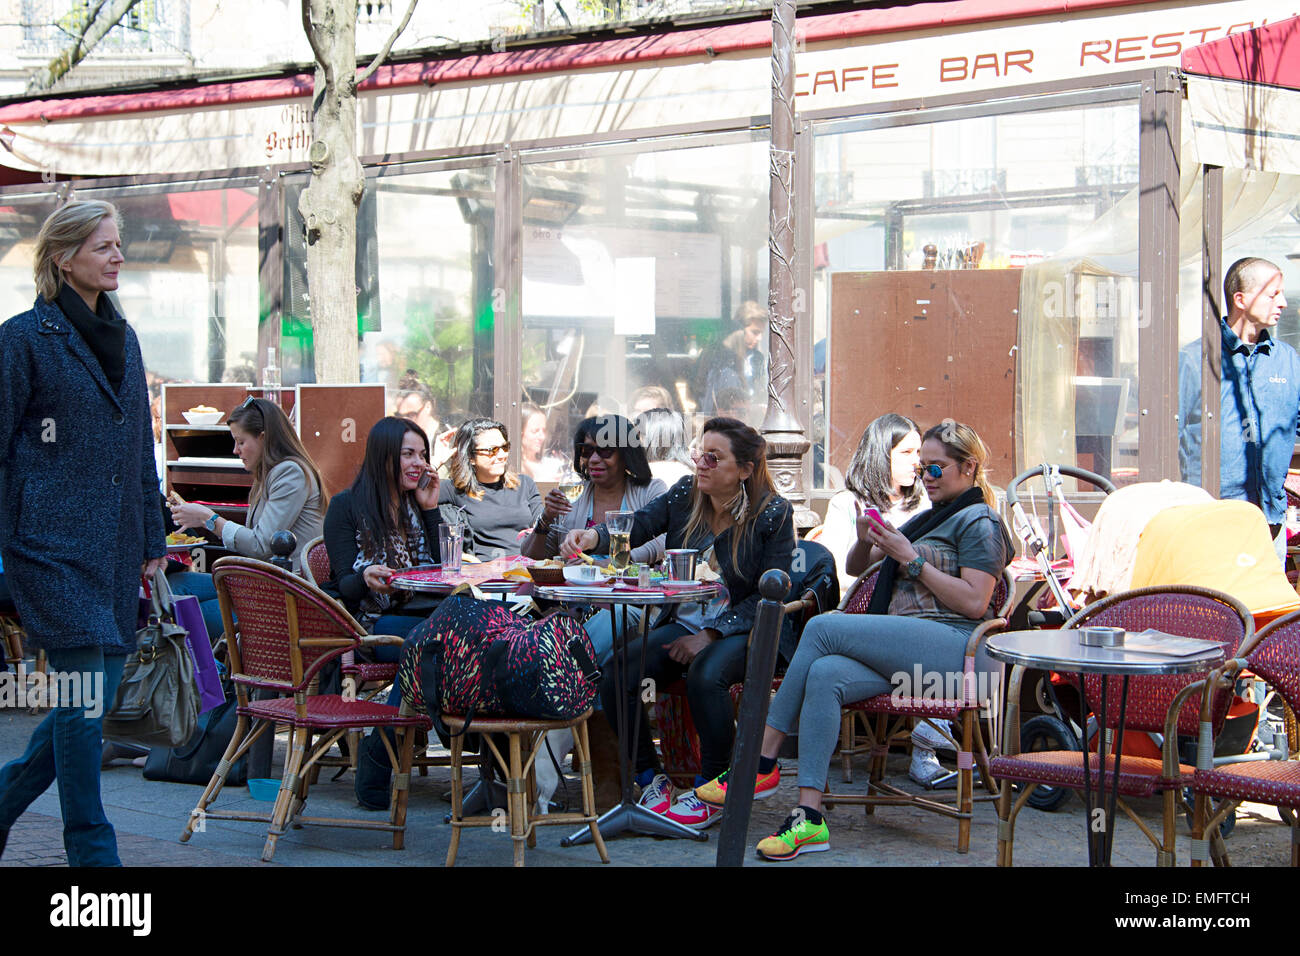 Paris young women enjoying relaxation time in city cafe. - Stock Image